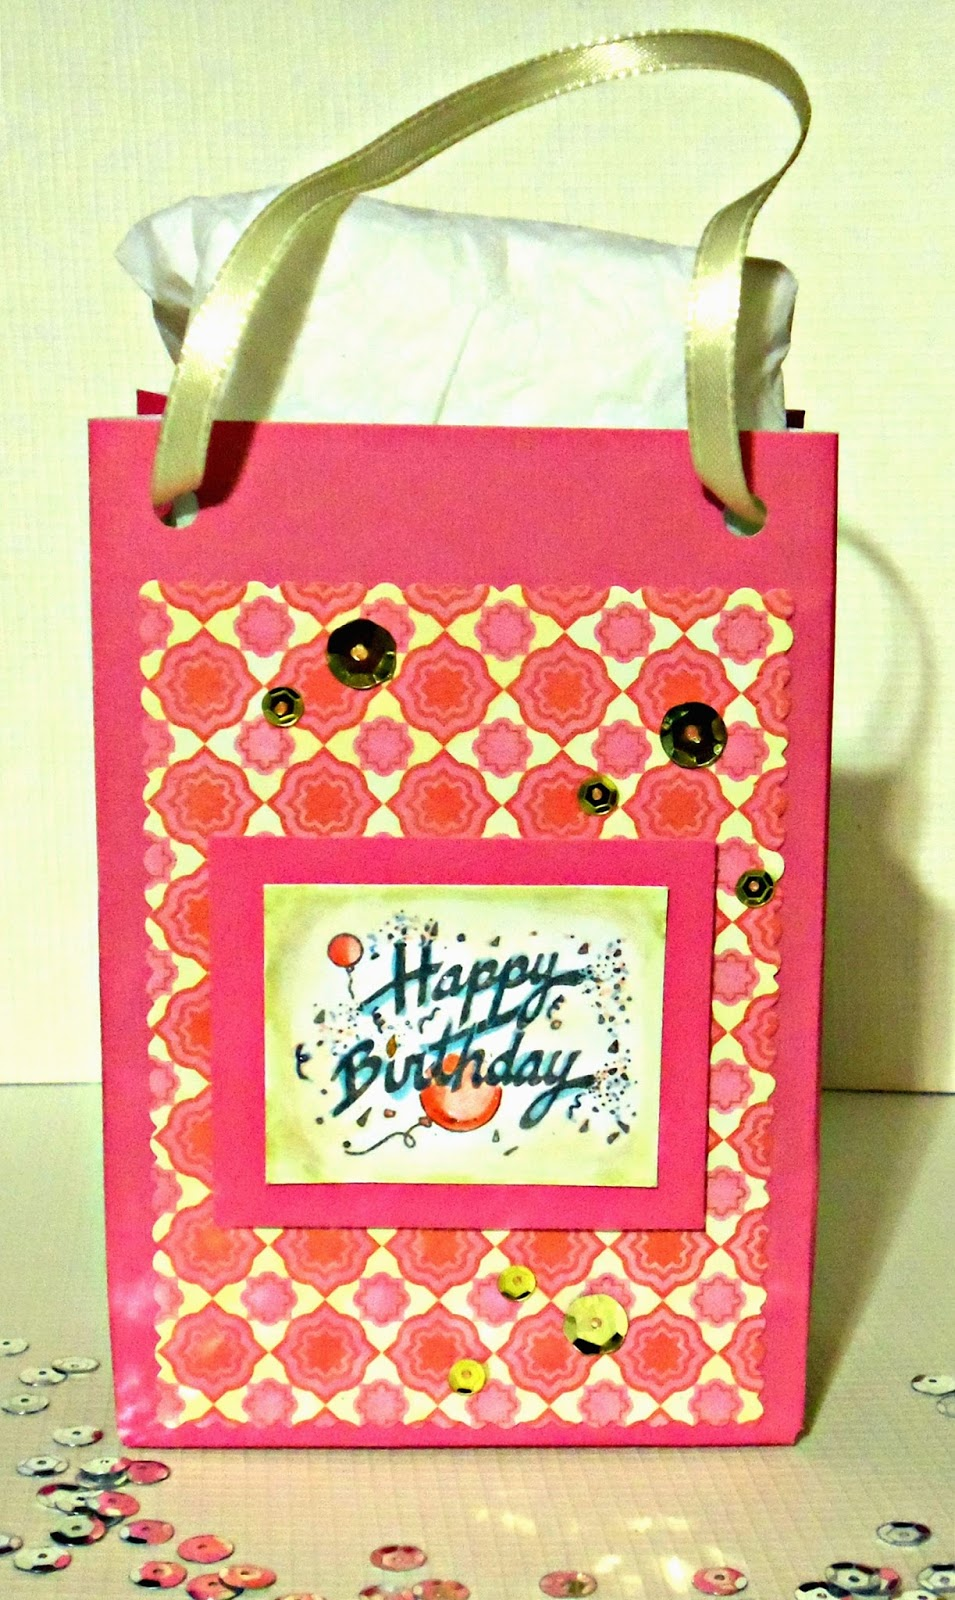 Their Inaugural Challenge Theme This January Is Birthday Pink Card Base Any Themed Craft Project Eligible So I Made A Gift Bag Using